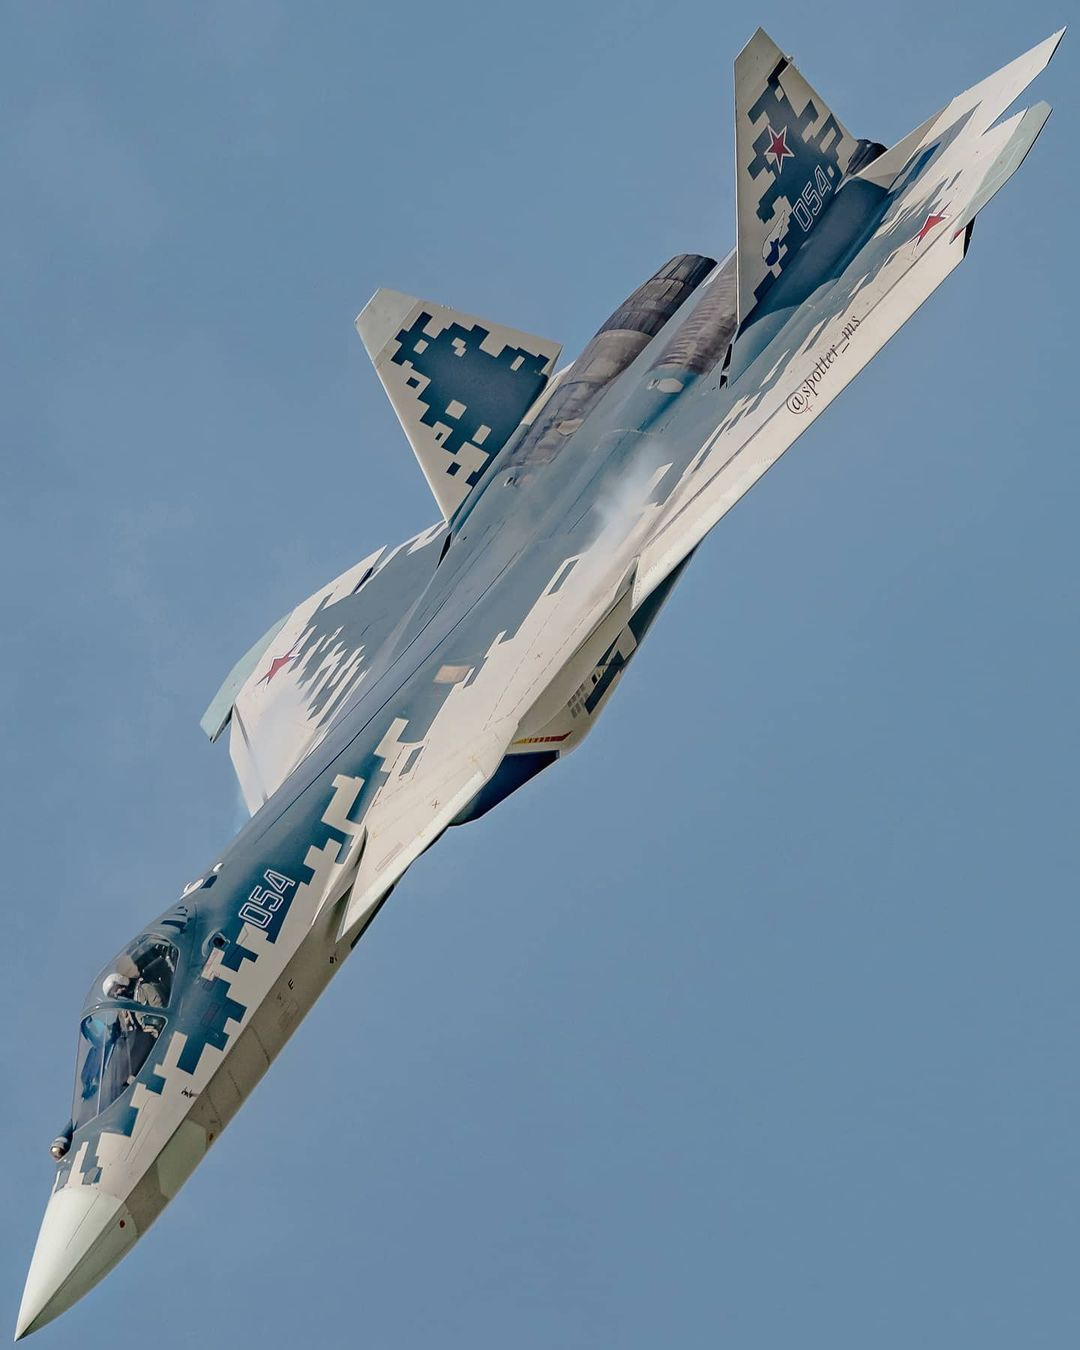 Su-57 Stealth Fighter: News #6 - Page 20 EkjmQyHW0AEdR3f?format=jpg&name=large